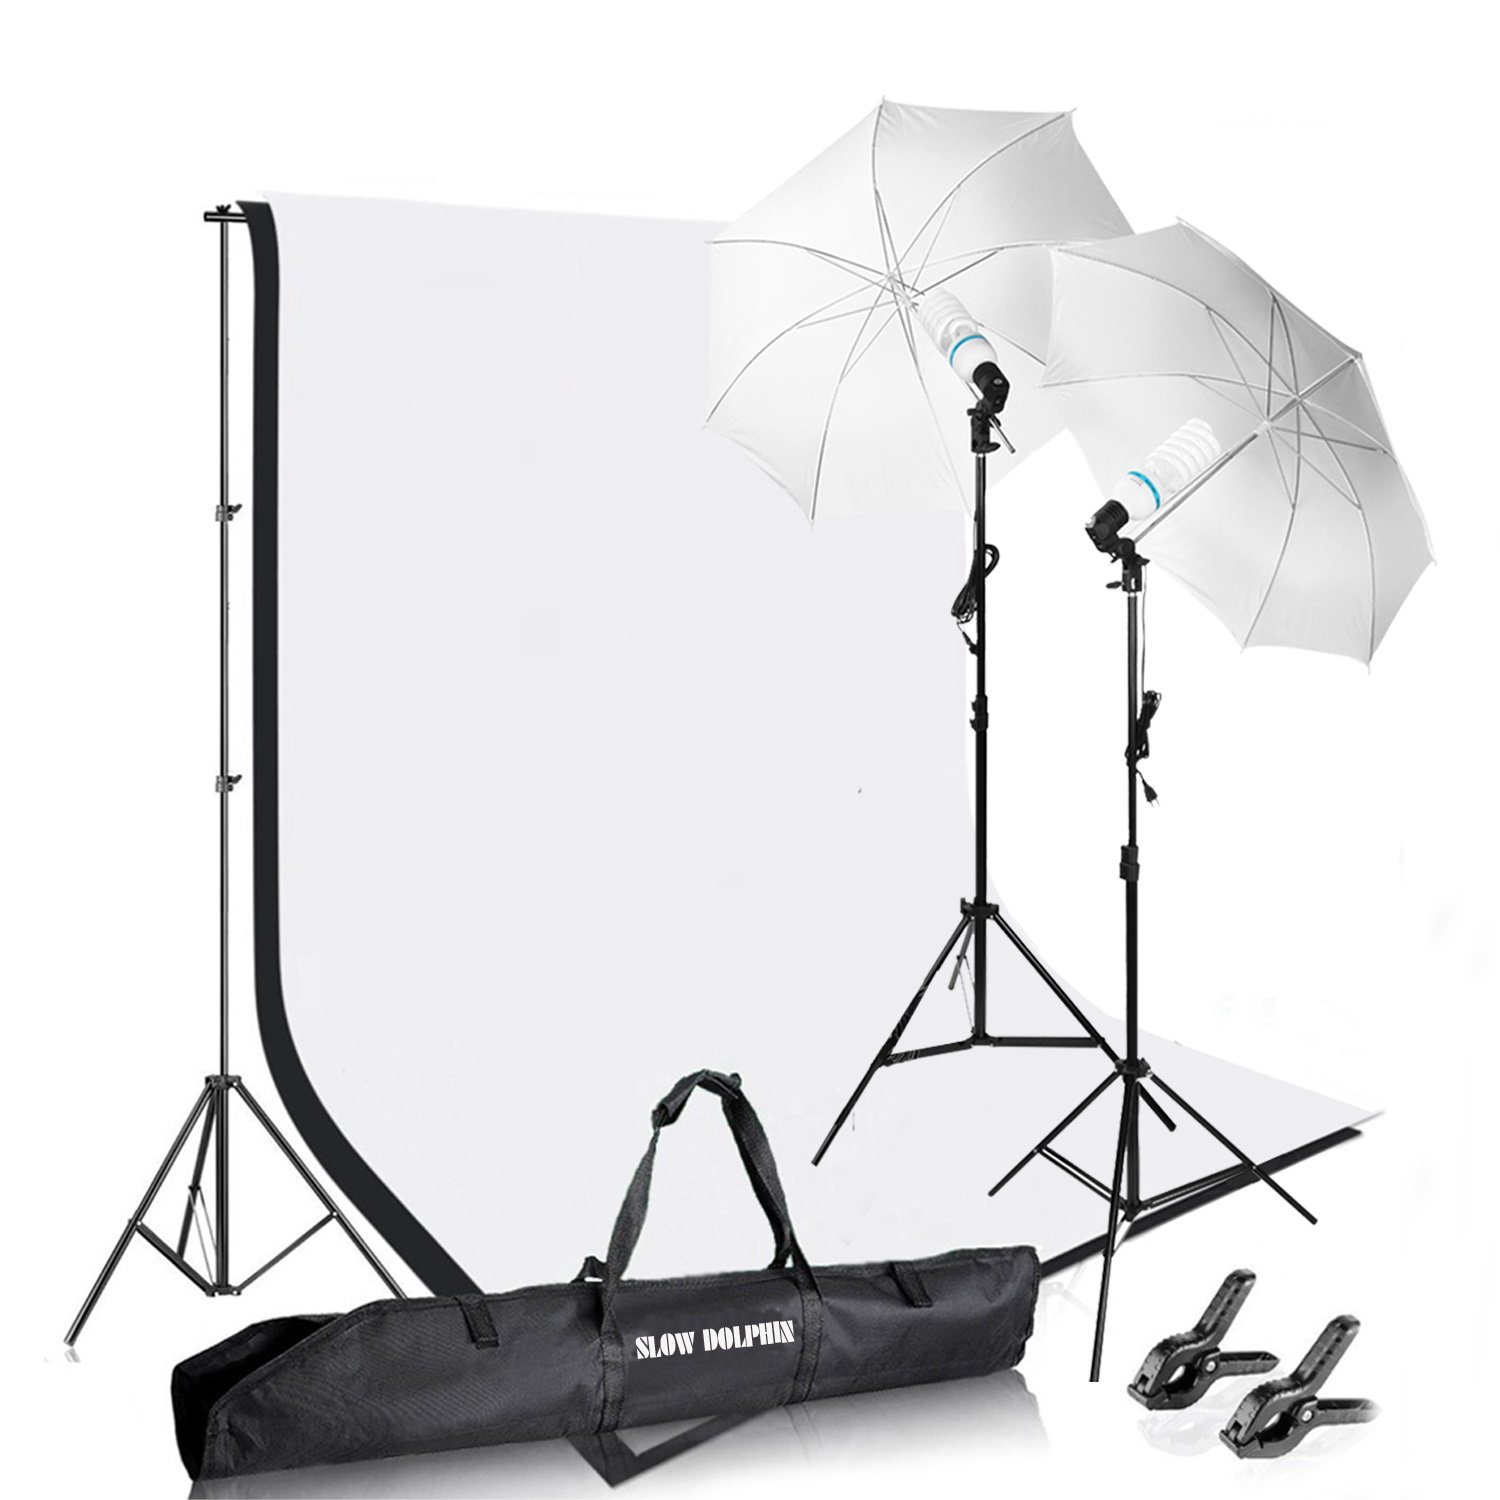 Slow Dolphin Photography Photo Video Studio Background Stand Support Kit with Muslin Backdrop Kits (White Black),1050W 5500K Daylight Umbrella Lighting Kit by SLOW DOLPHIN